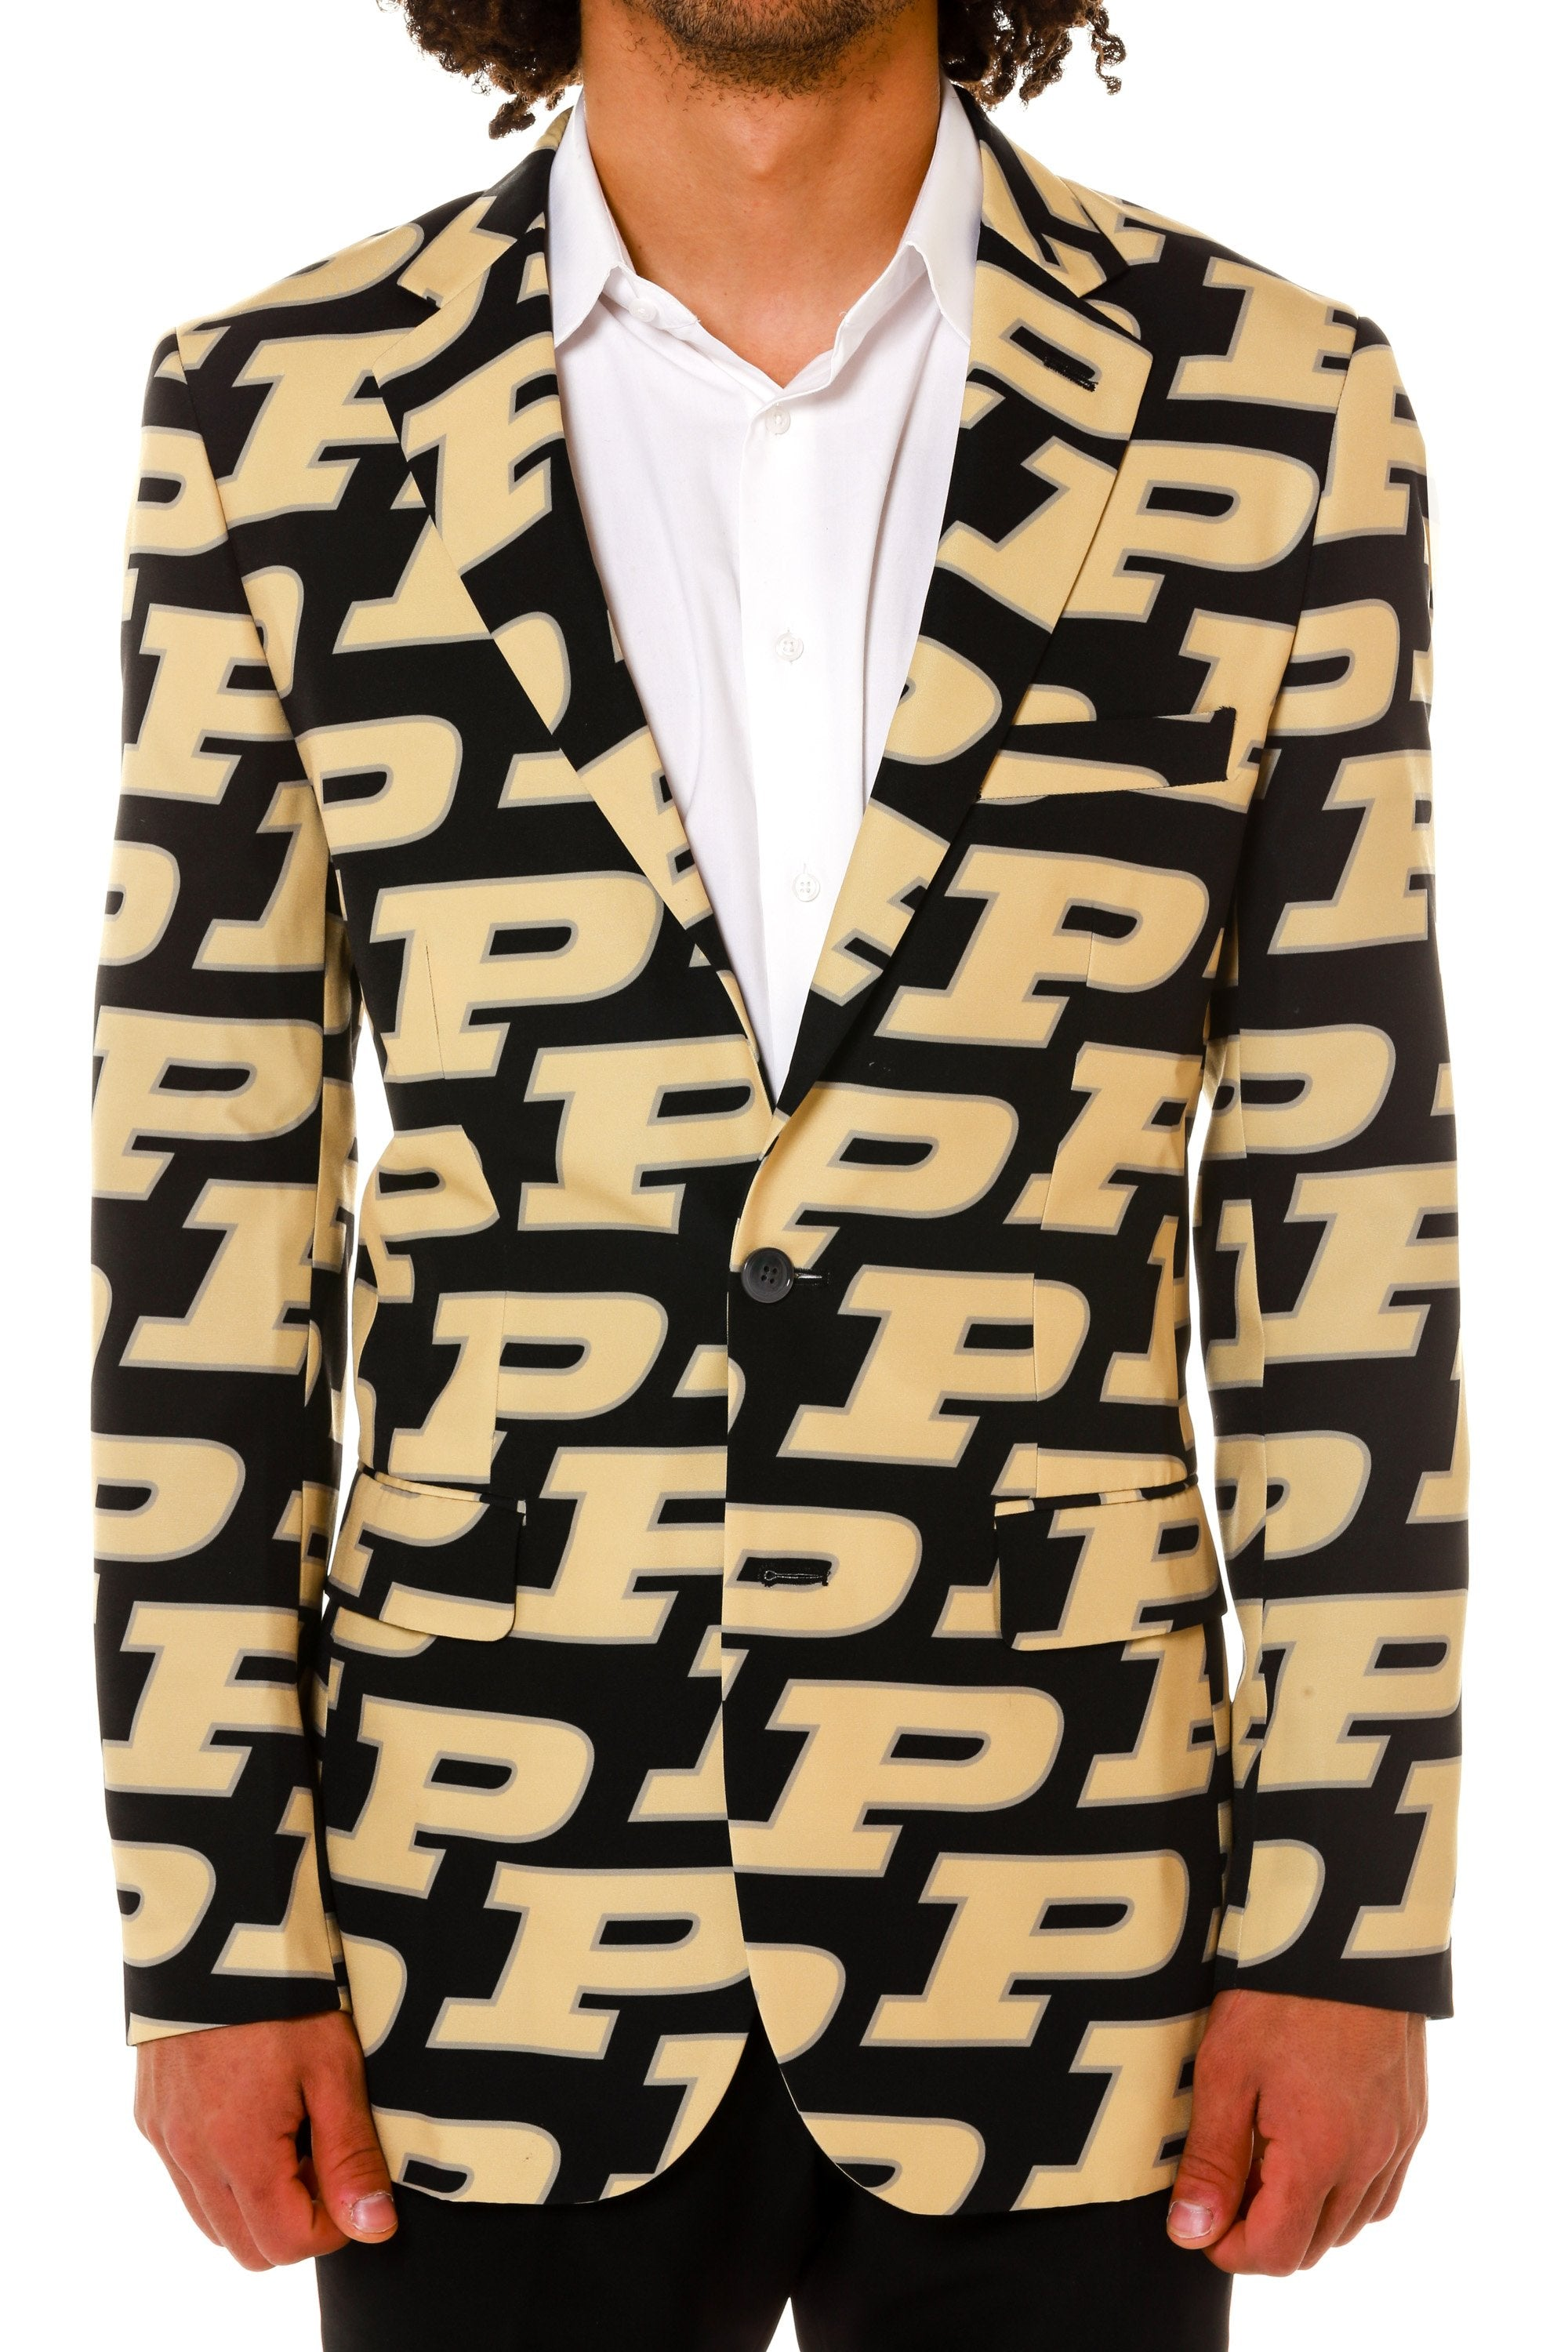 University of Purdue party blazer